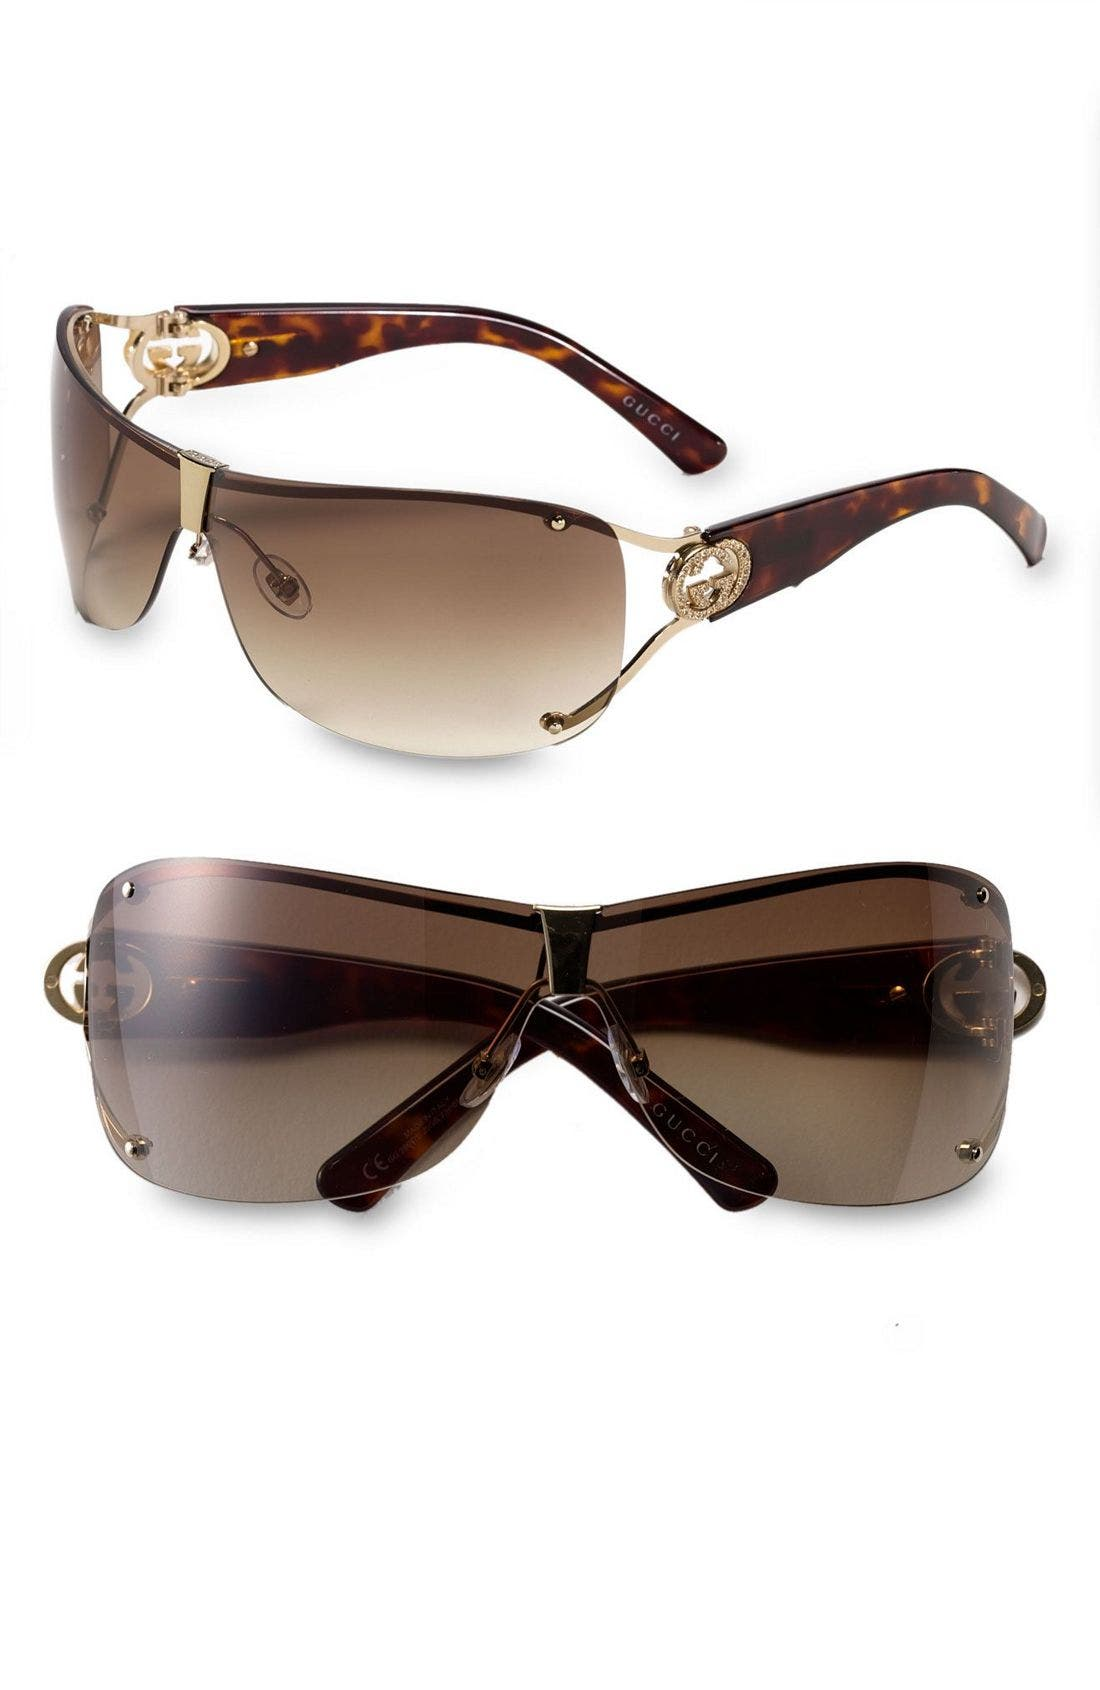 Main Image - Gucci 73mm Shield Sunglasses with Crystal Logo Detail